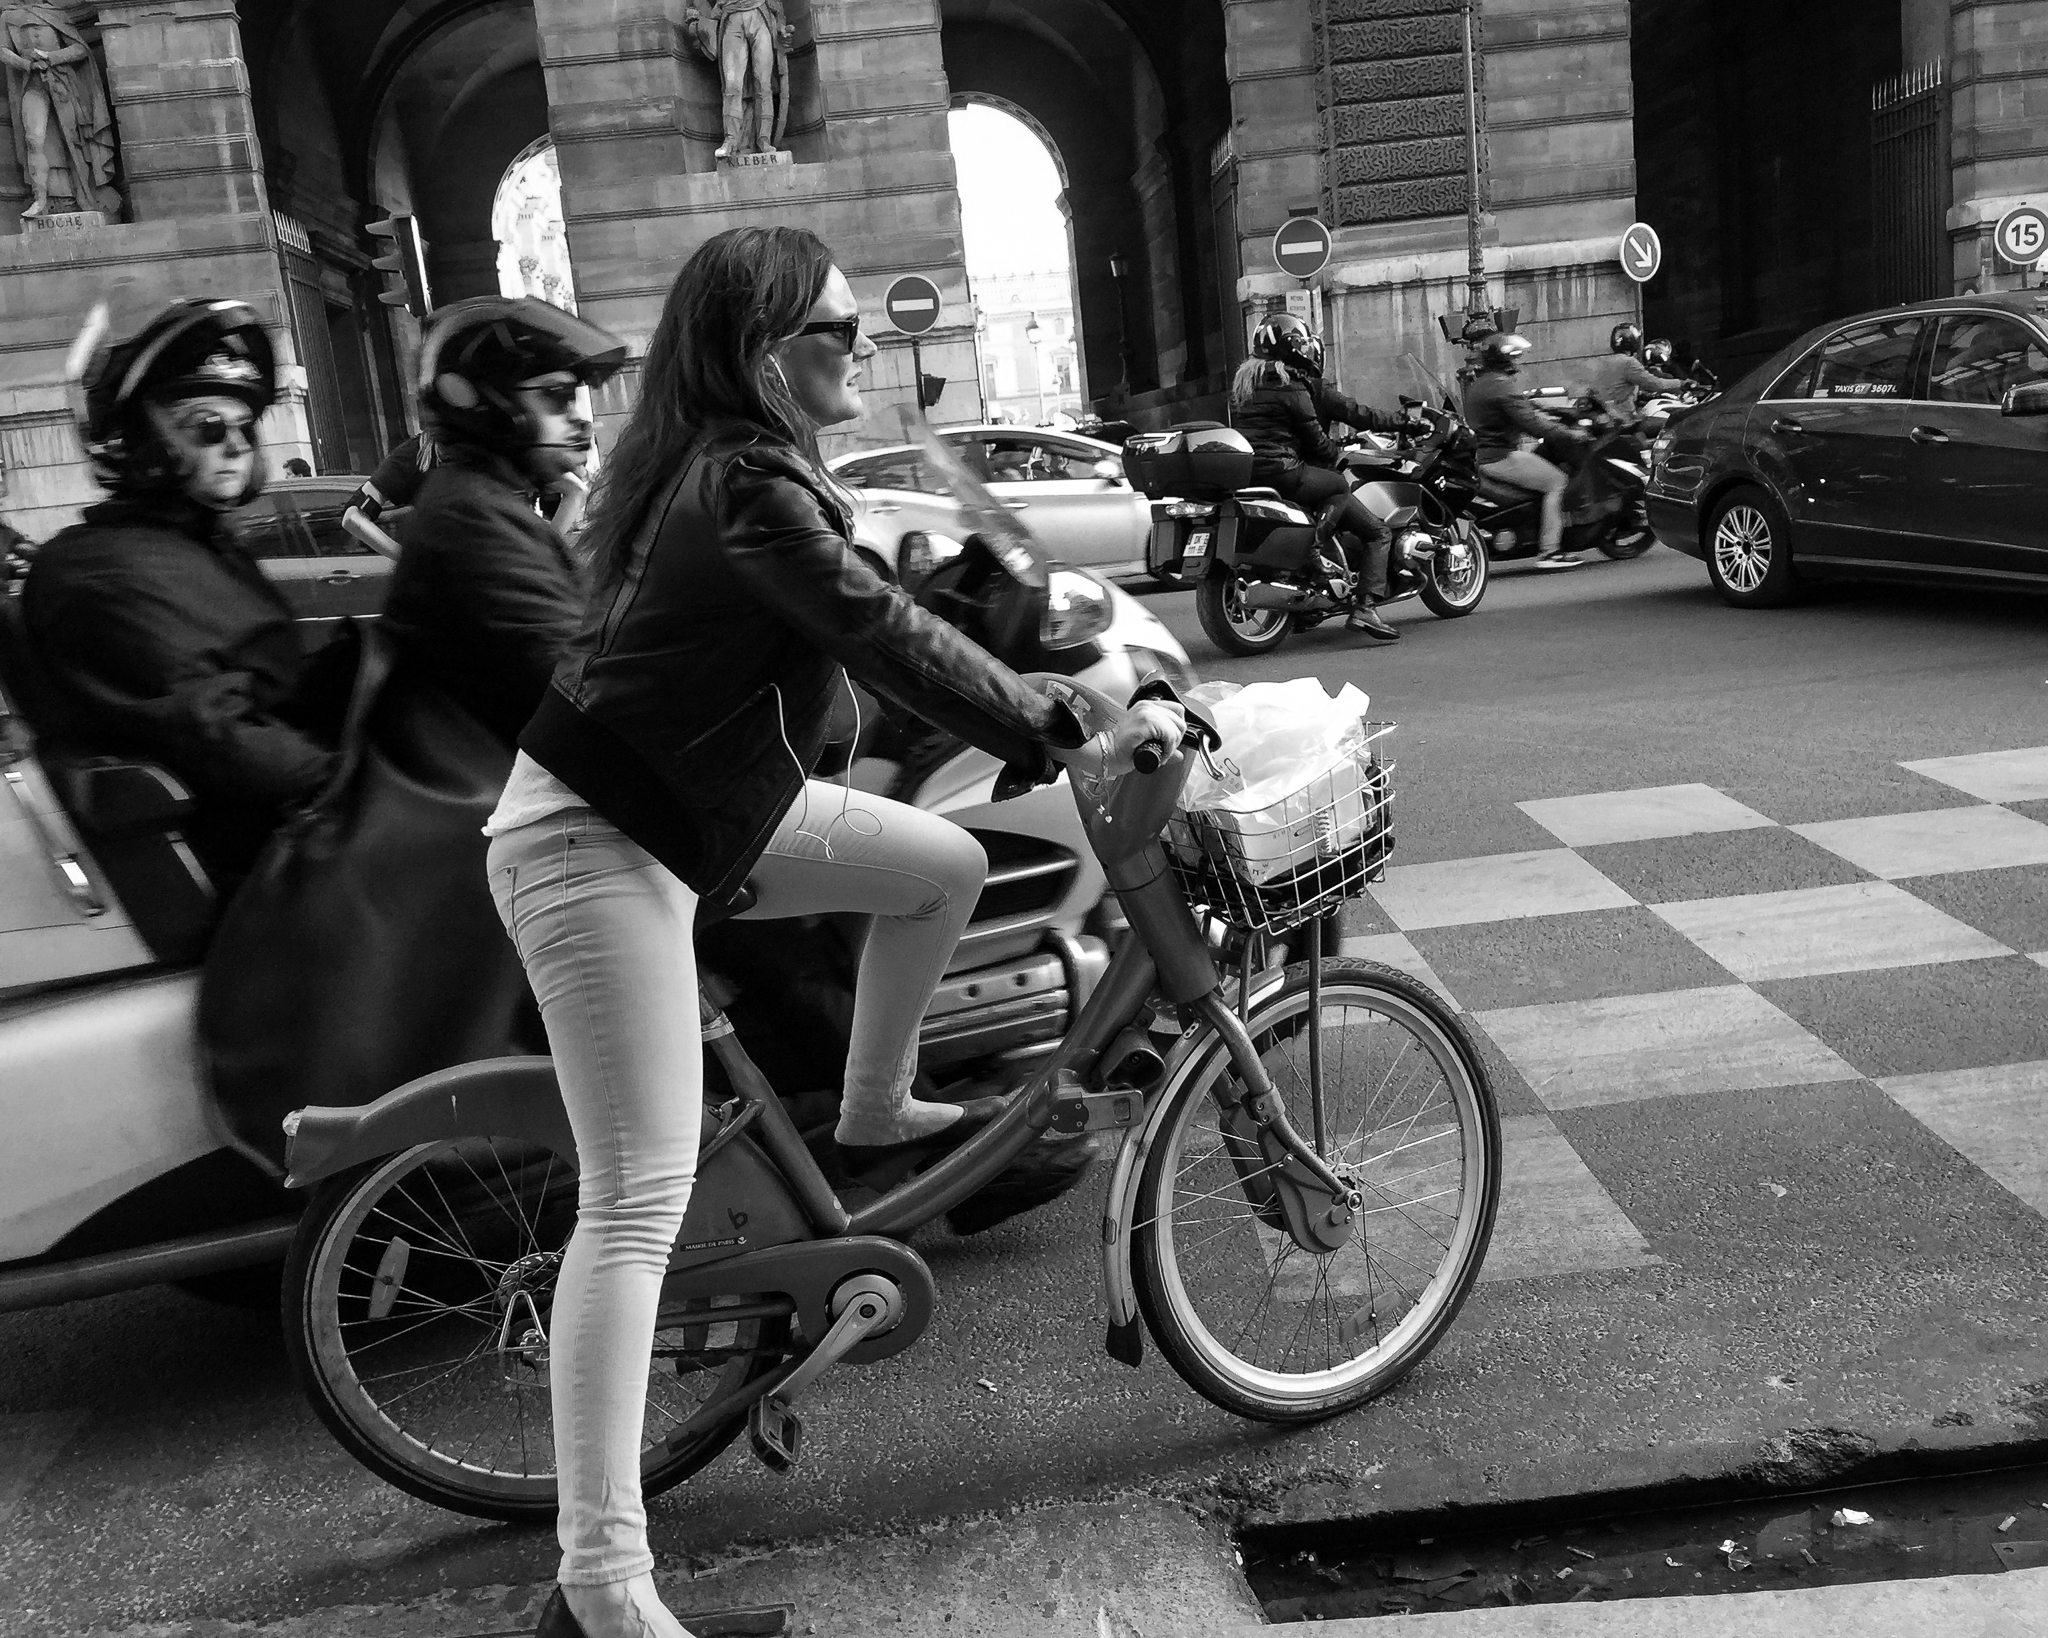 A woman rides a rented bike on the street in Paris, France. The Velib´ bike sharing program makes over 20,000 bikes available to Parisians at over 1,800 stations throughout the city.